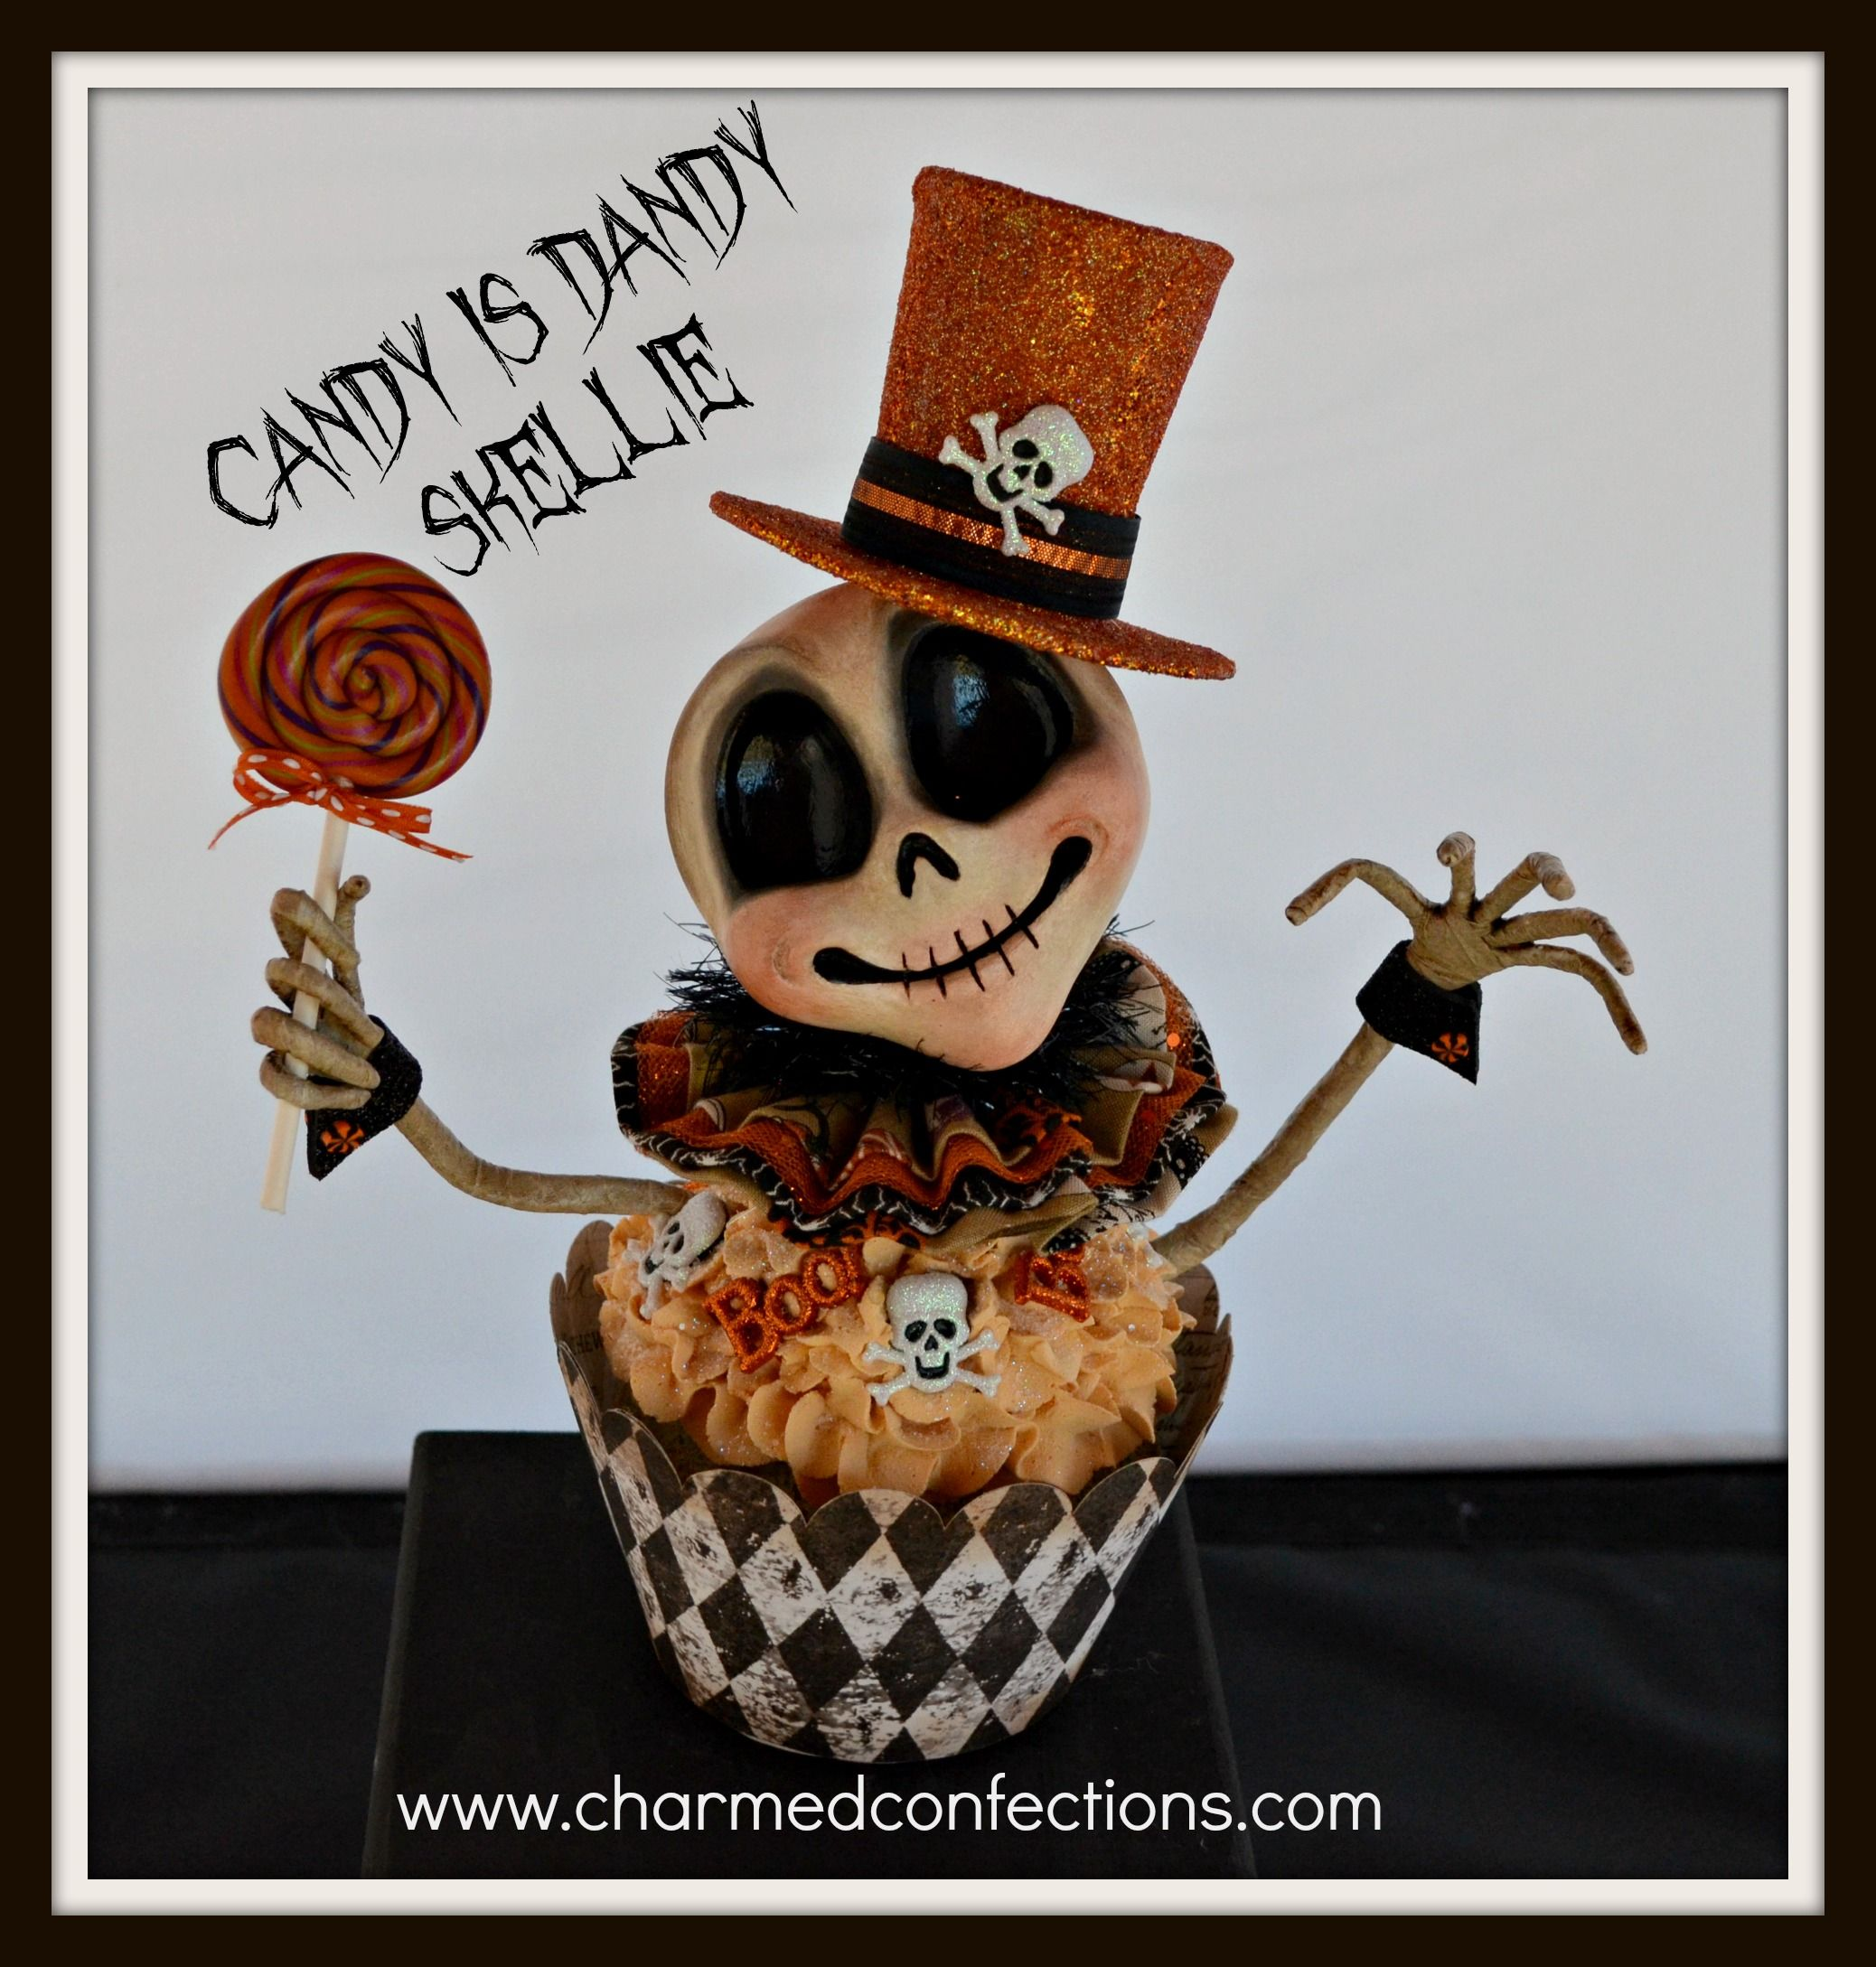 Charmed Confections Ghoulie Cake by LeeAnn Kress  www.charmedconfections.com